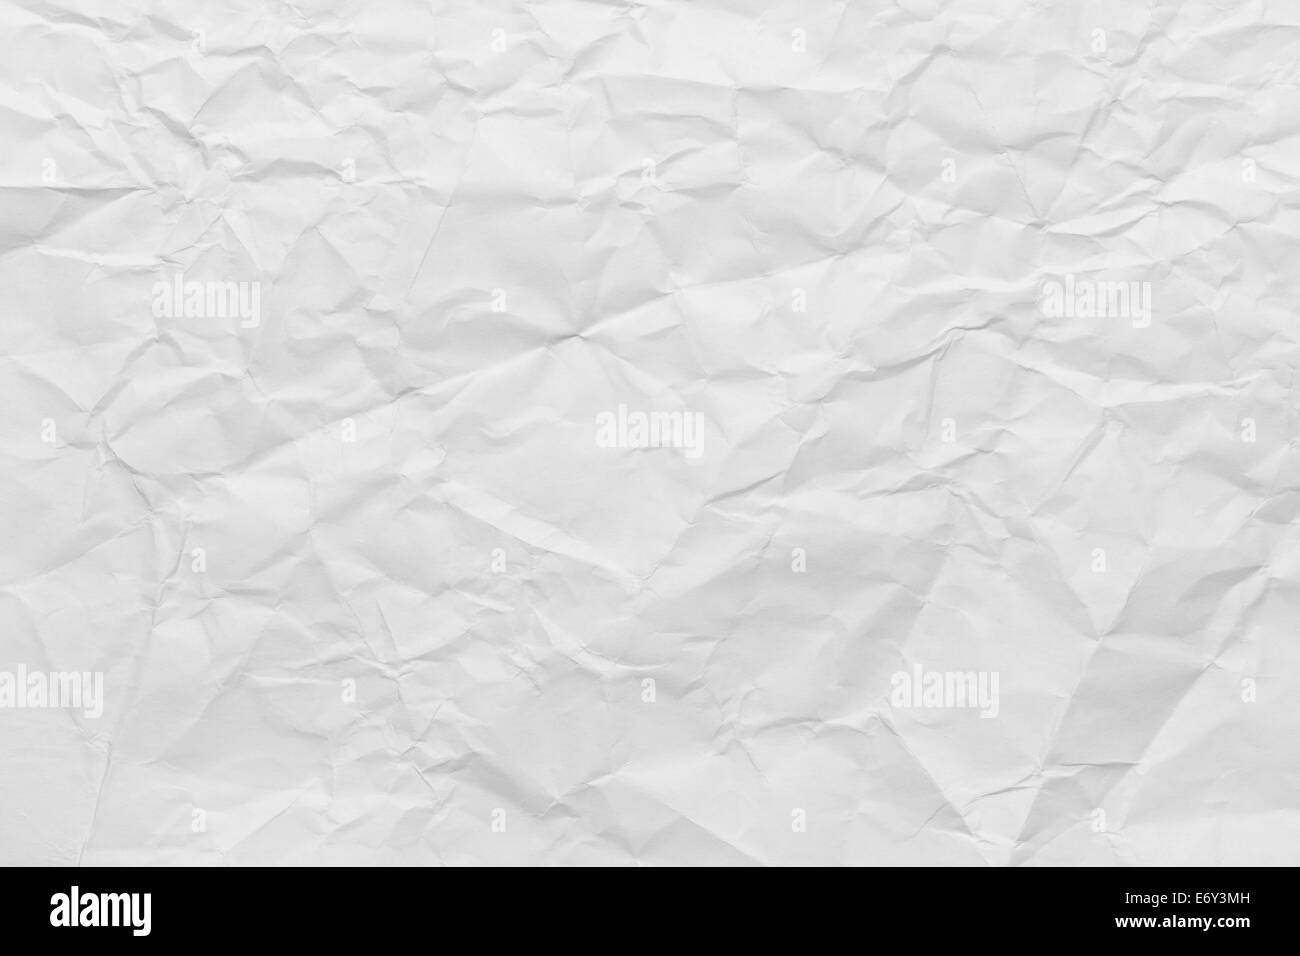 Sheet of Printer Paper Wrinkled Background. - Stock Image